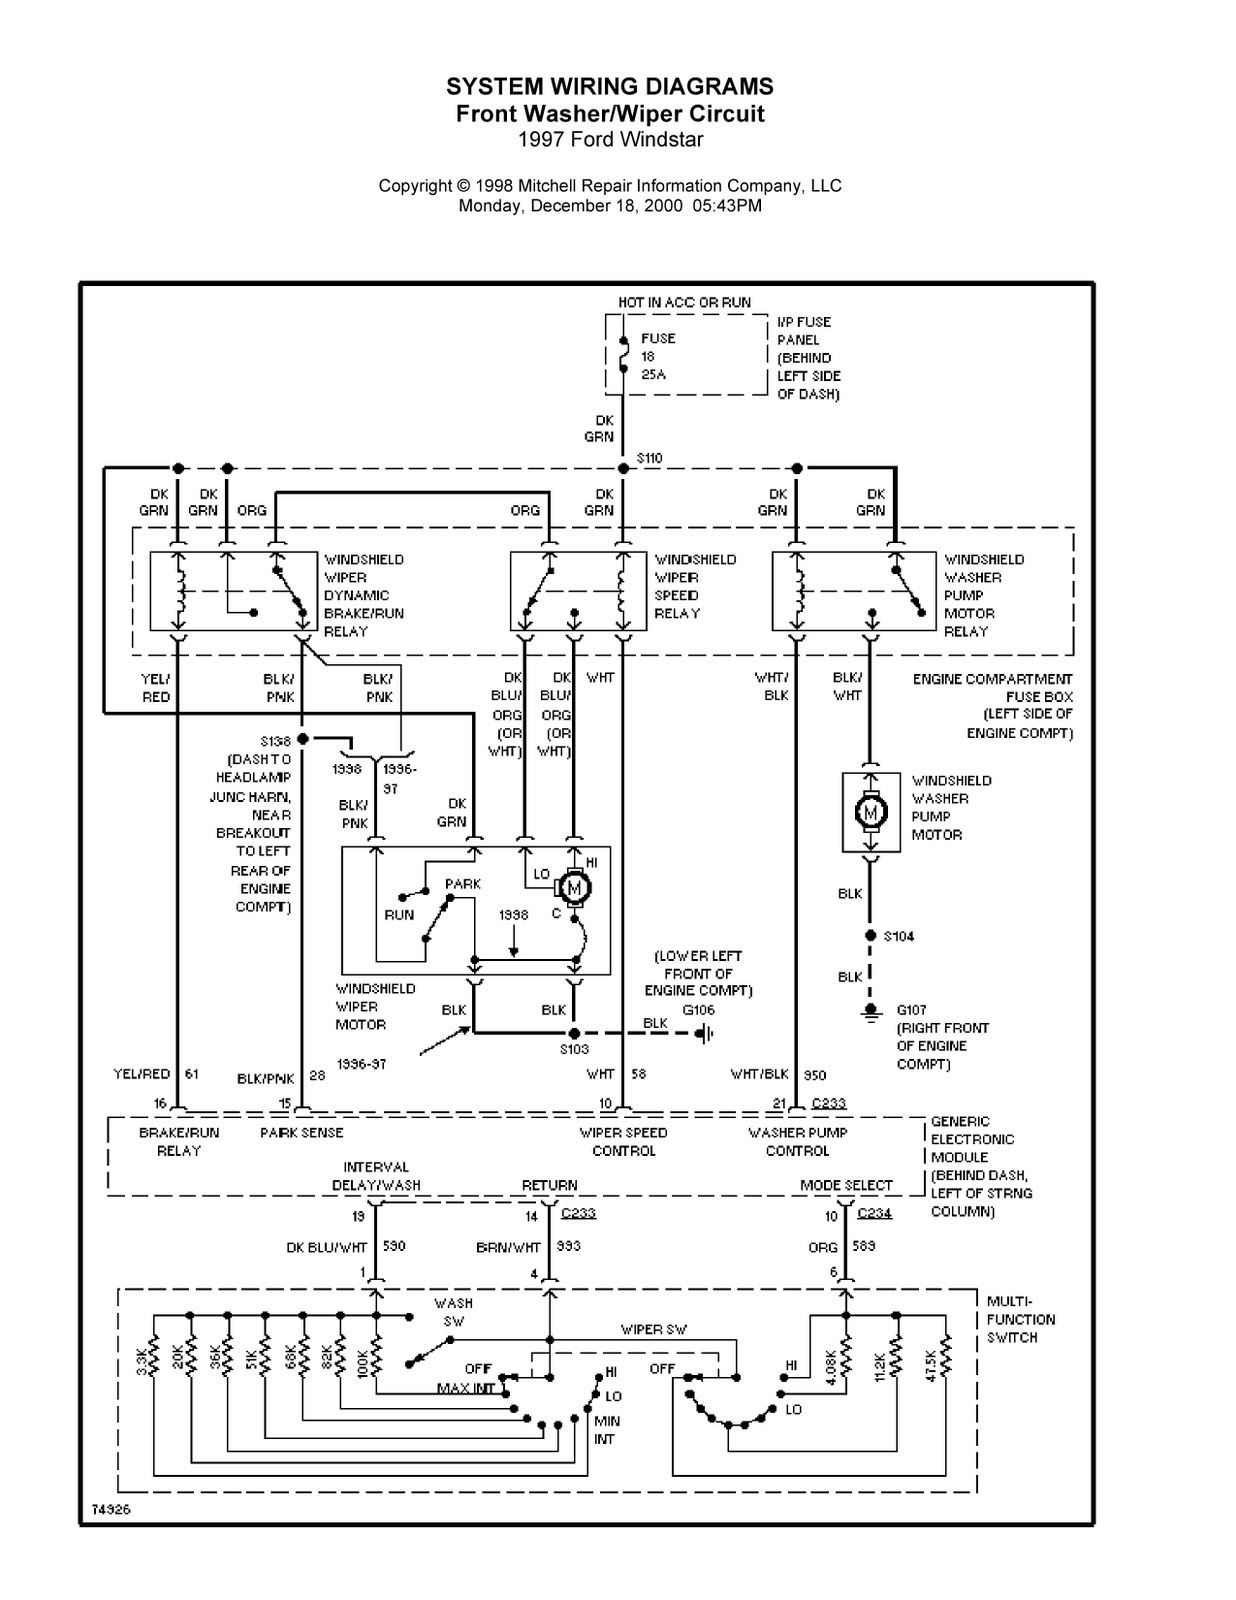 1997 Windstar Wiring Diagram Another Blog About Tauru Gl Fuse Ford Complete System Diagrams